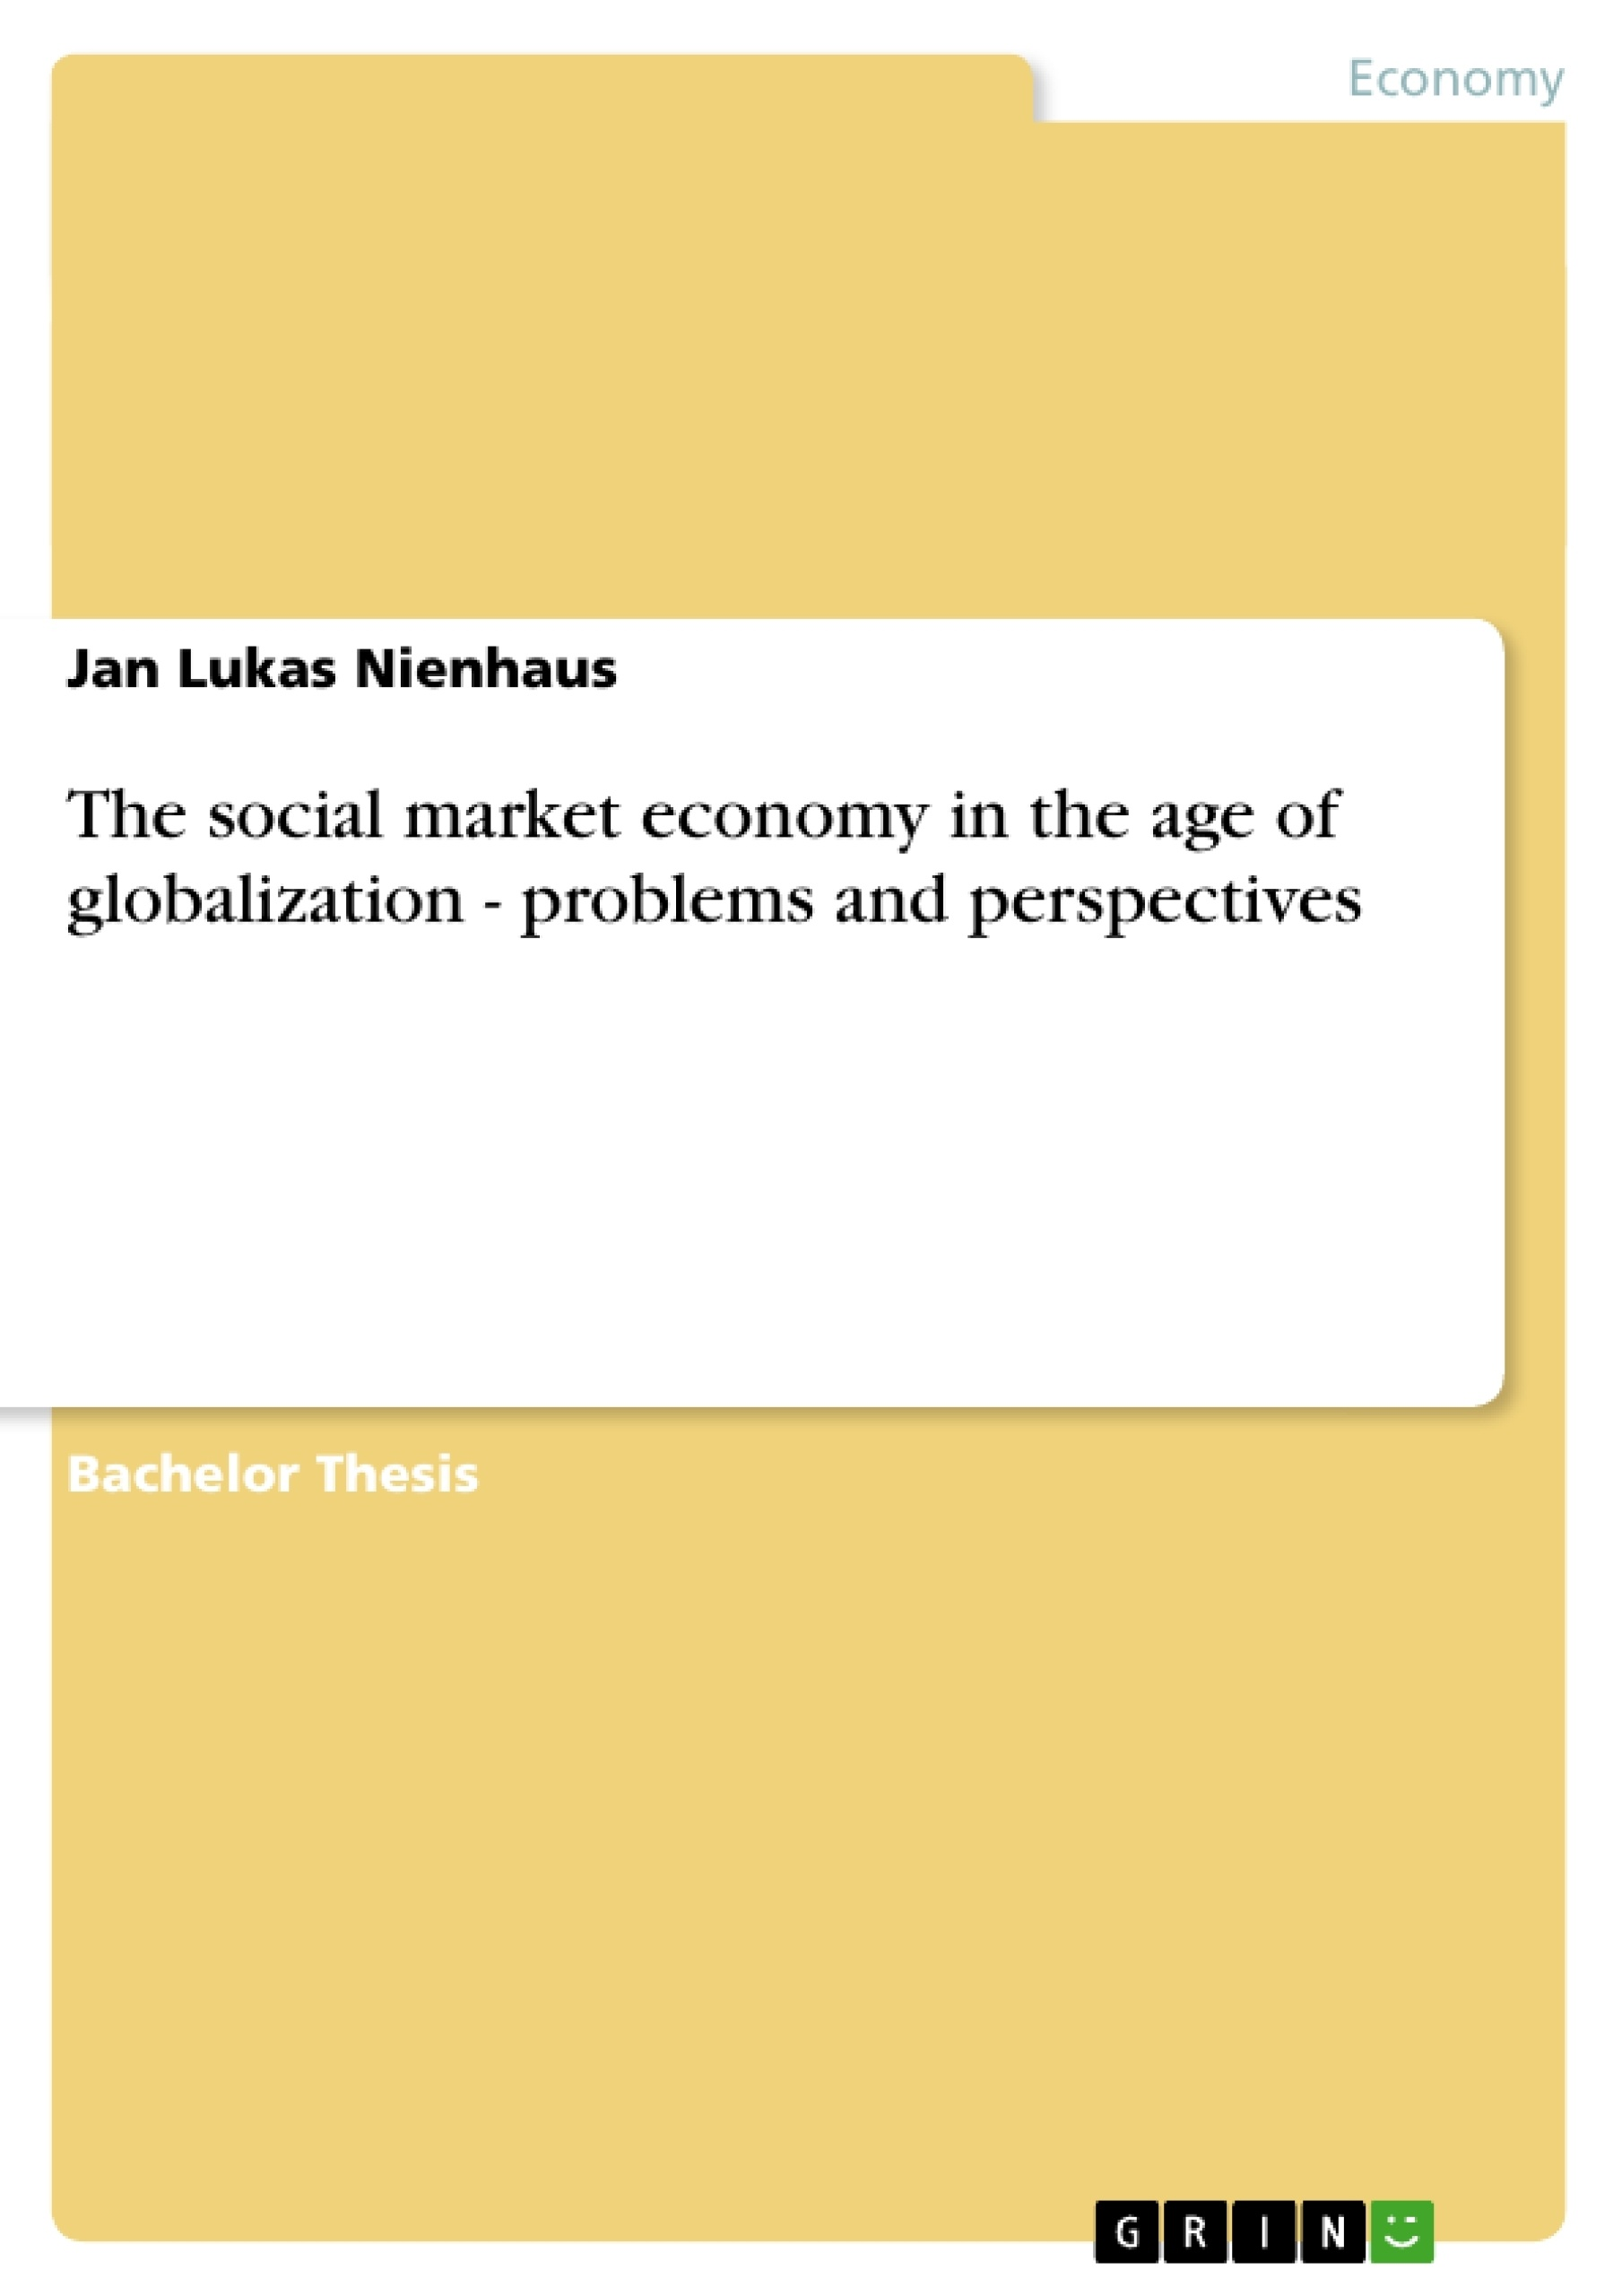 Dissertation multipolarity in the world economy